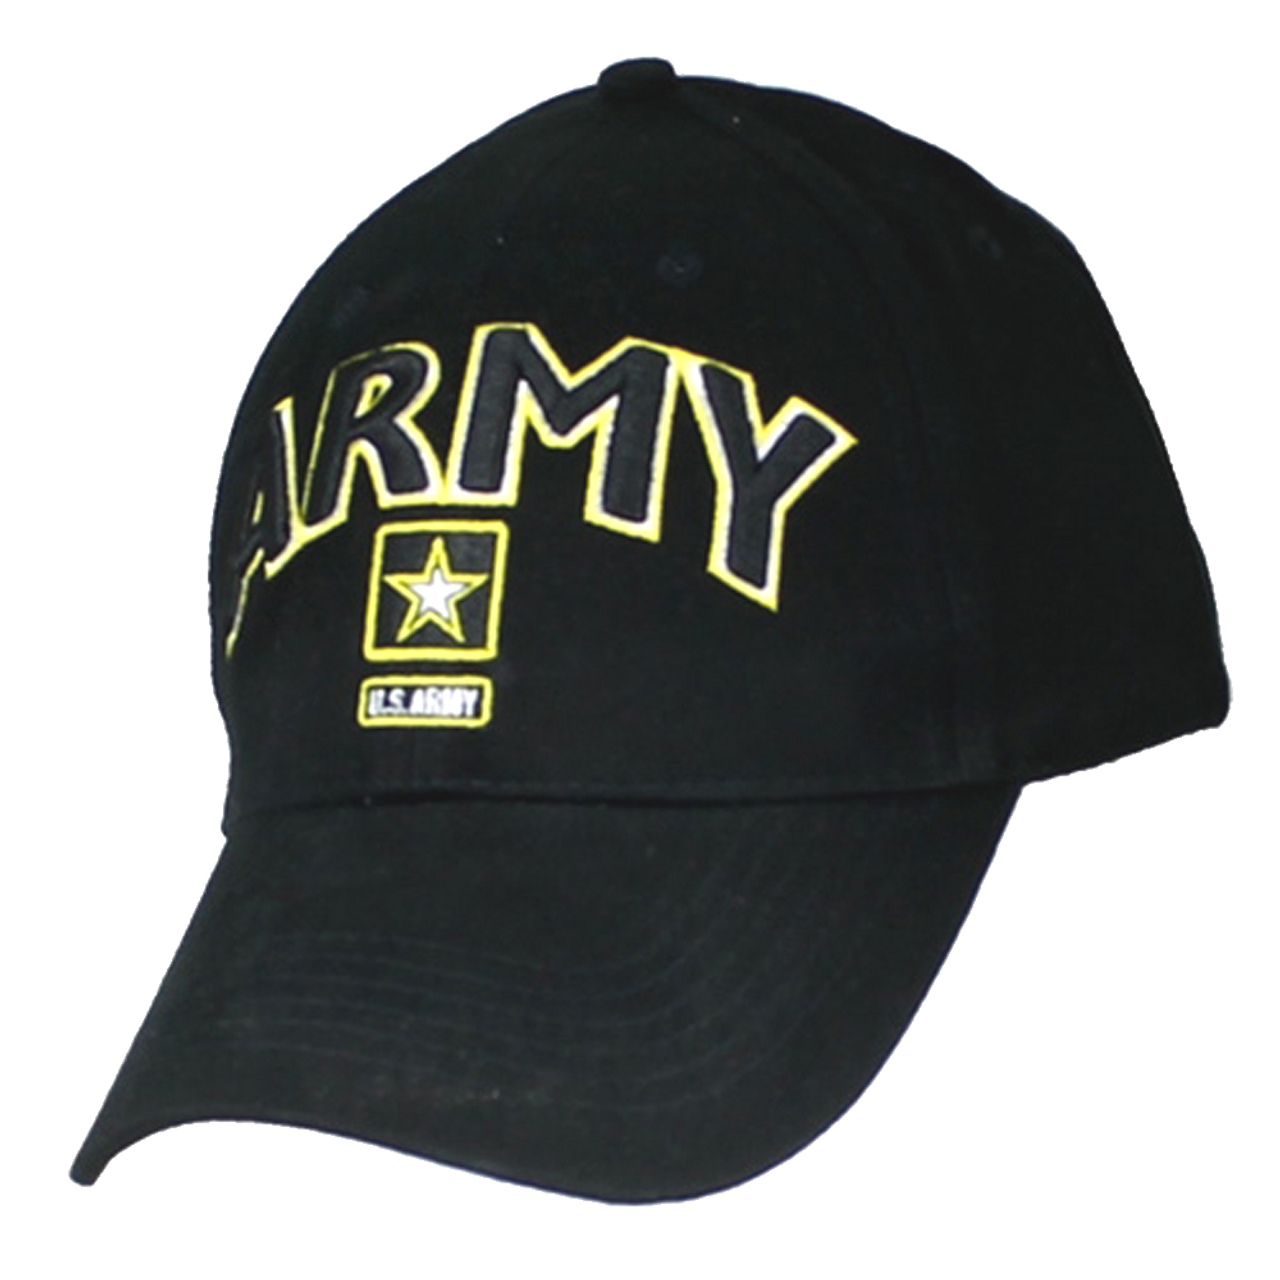 aec9ee51f0e Eagle Crest 6468 - Army Cap - Star Logo - Cotton - Black